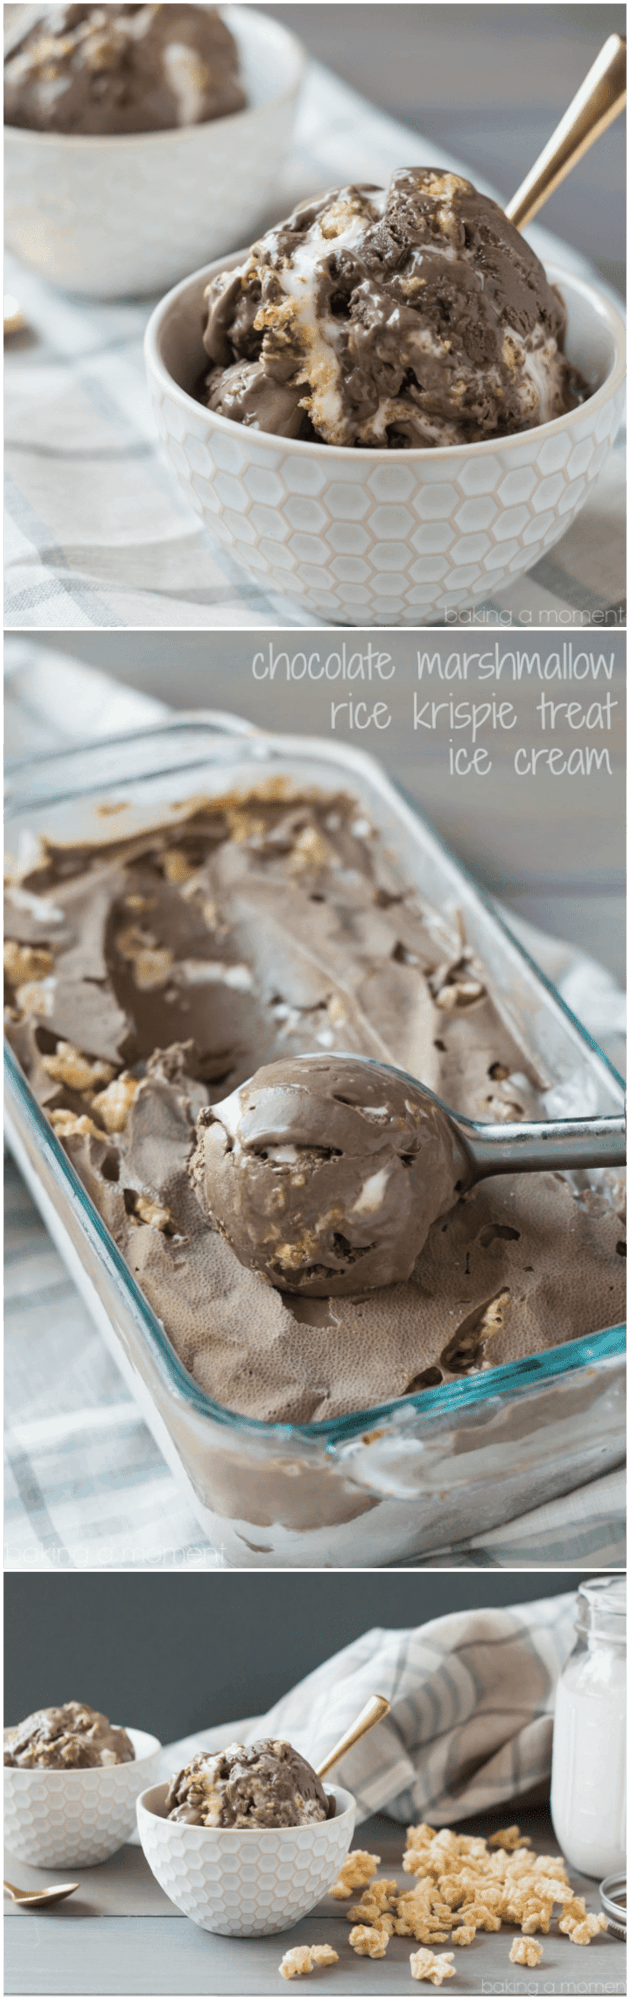 Chocolate Marshmallow Rice Krispie Treat Ice Cream- SWOON!